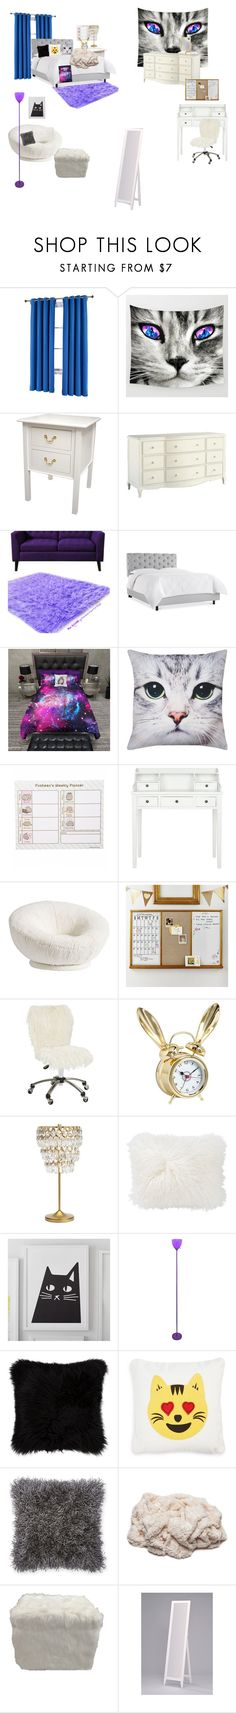 """""""Bedroom"""" by catty-glitter-girl on Polyvore featuring Fiesta, PBteen, M&Co, Pusheen, Home Decorators Collection, Lite Source, Levtex and bedroom"""